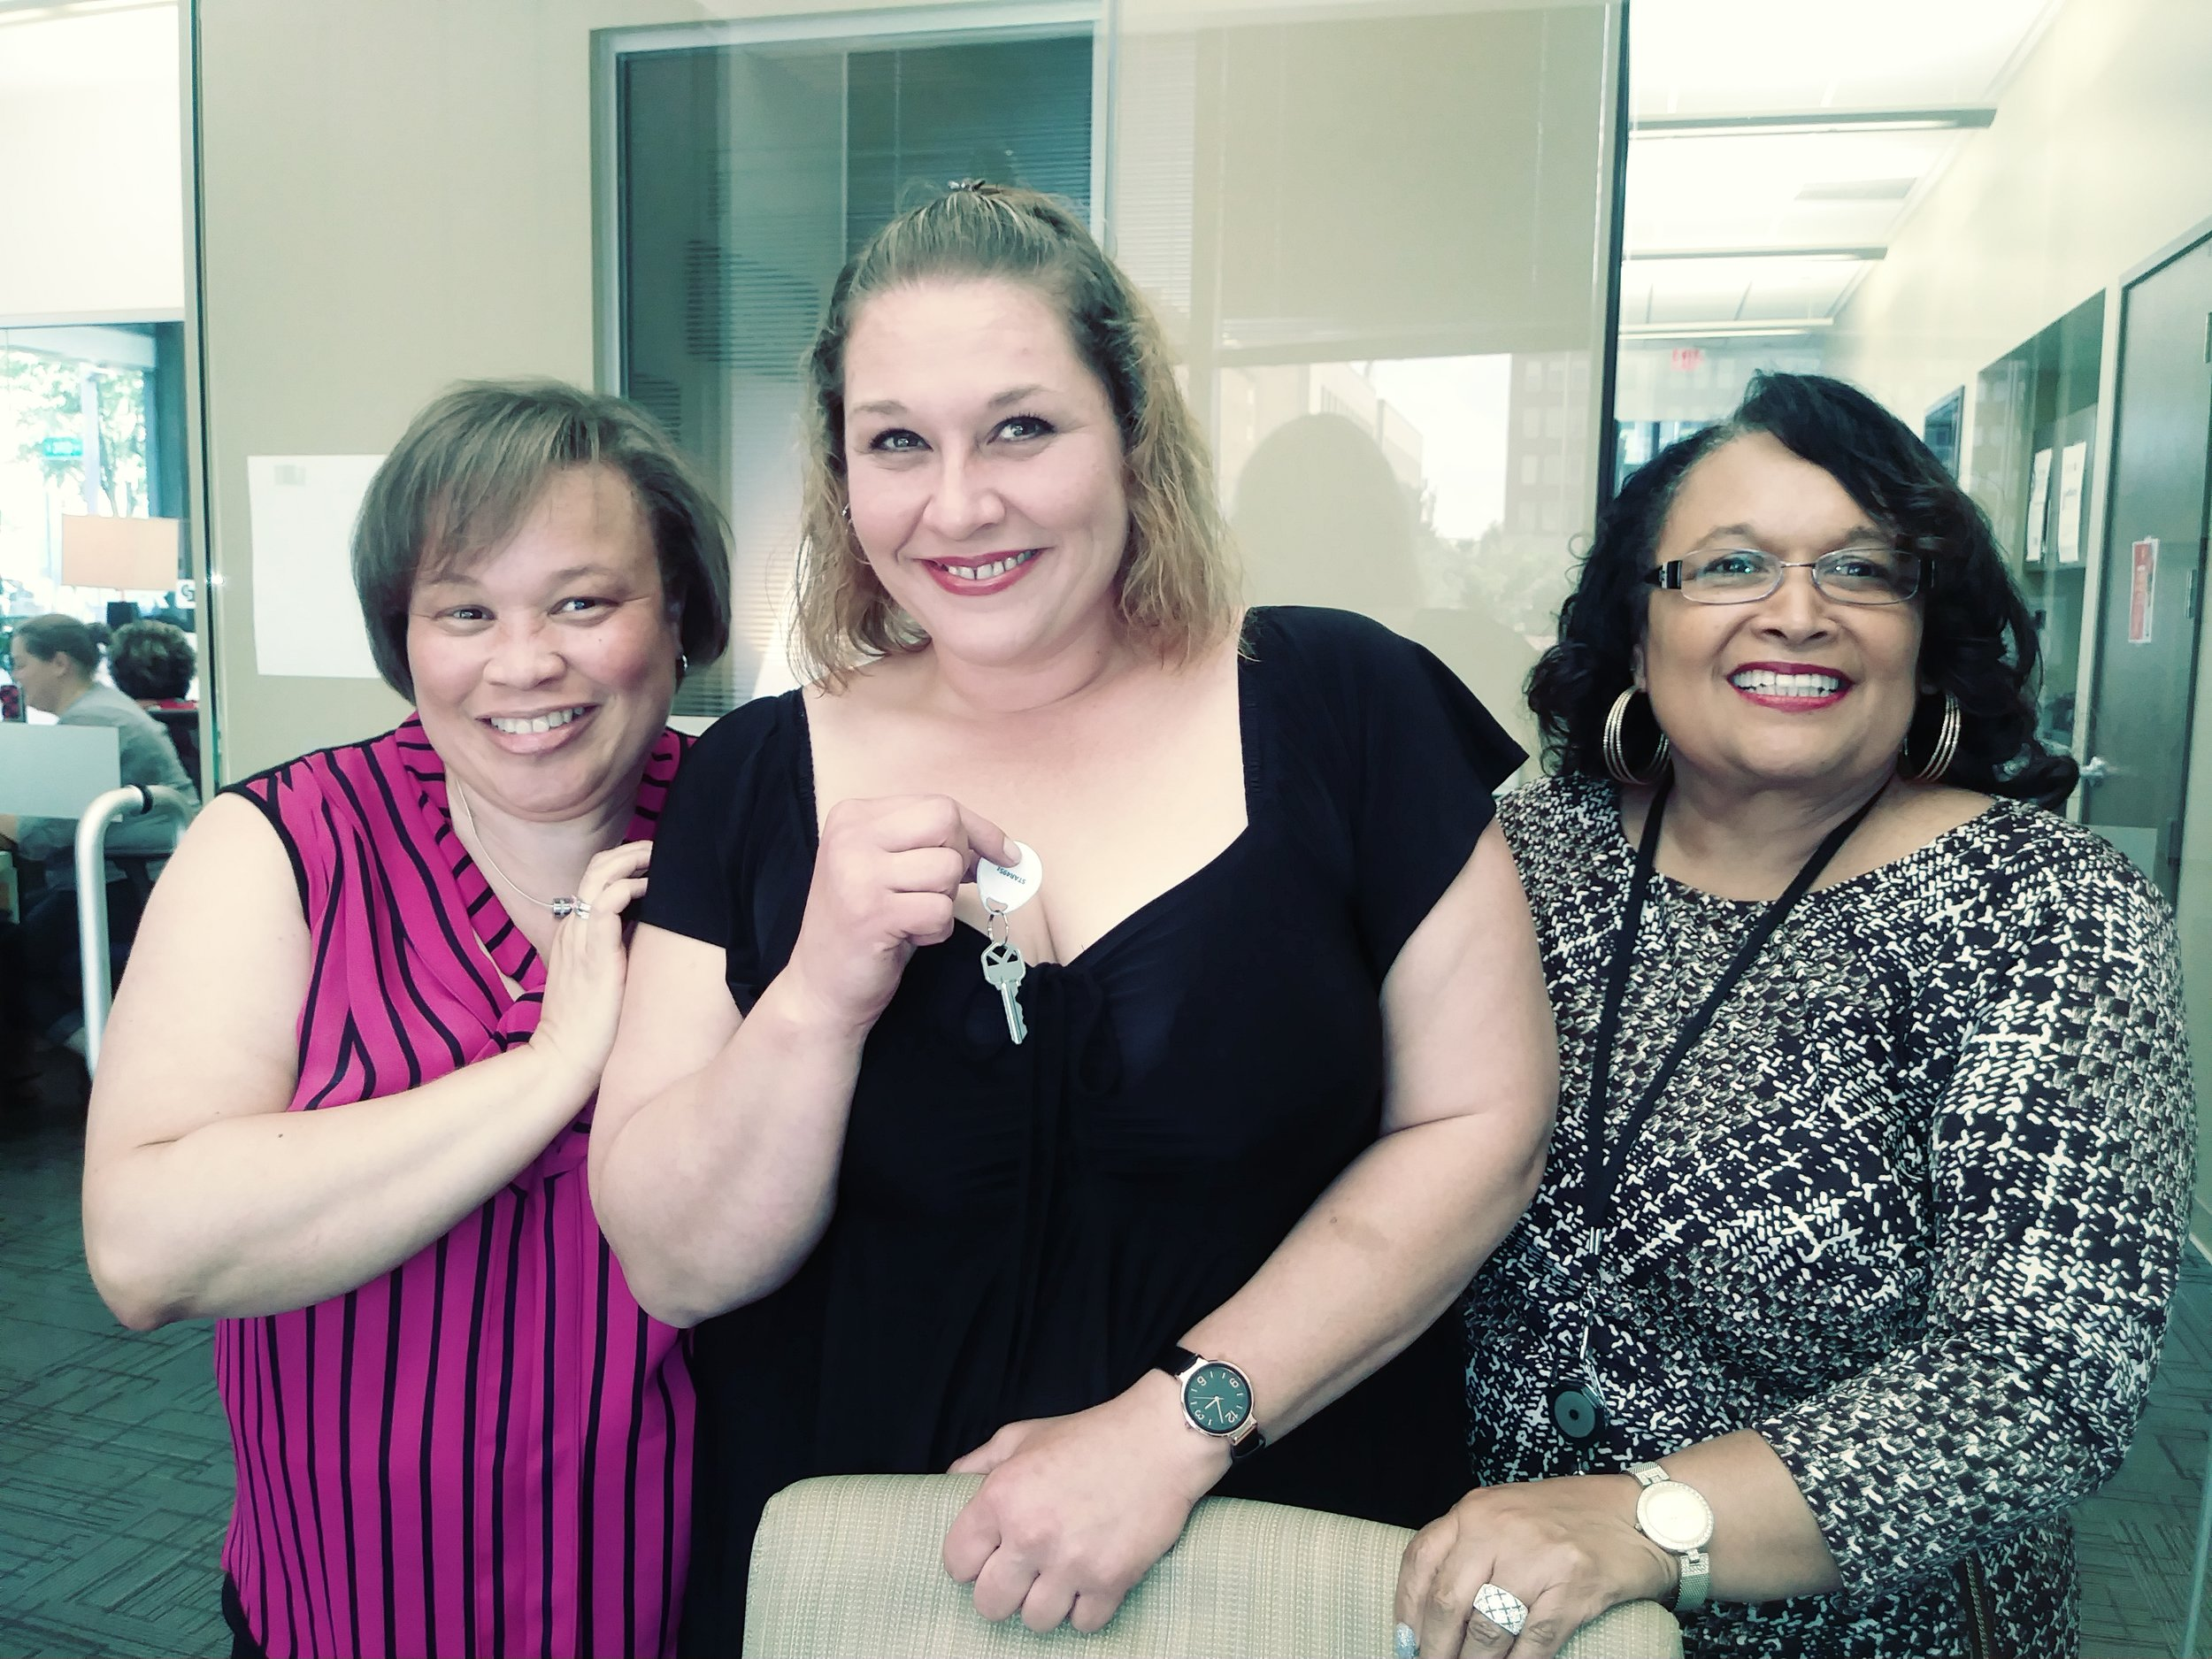 Maggie Parks at her home closing with Homeport's Brenda Moncrief, right, and Realtor Melle Eldridge of Coldwell Banker/King Thompson, left.